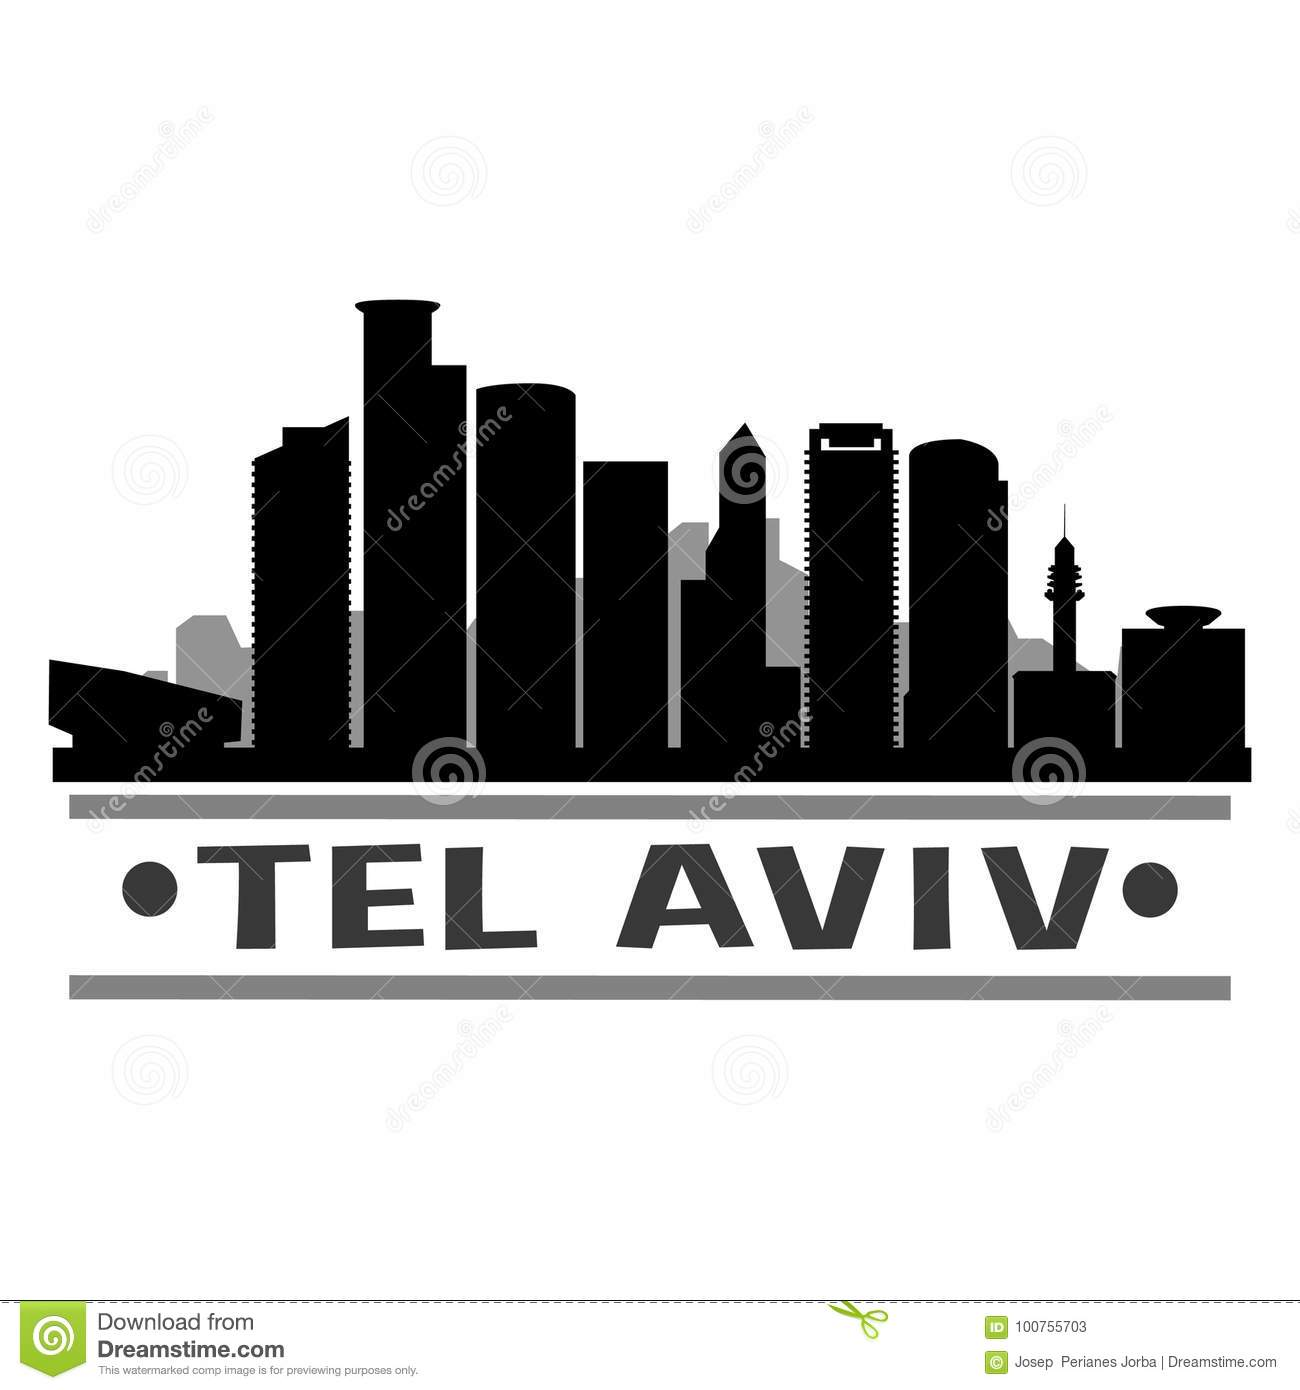 Tel Aviv city Icon Vector Art Design Skyline